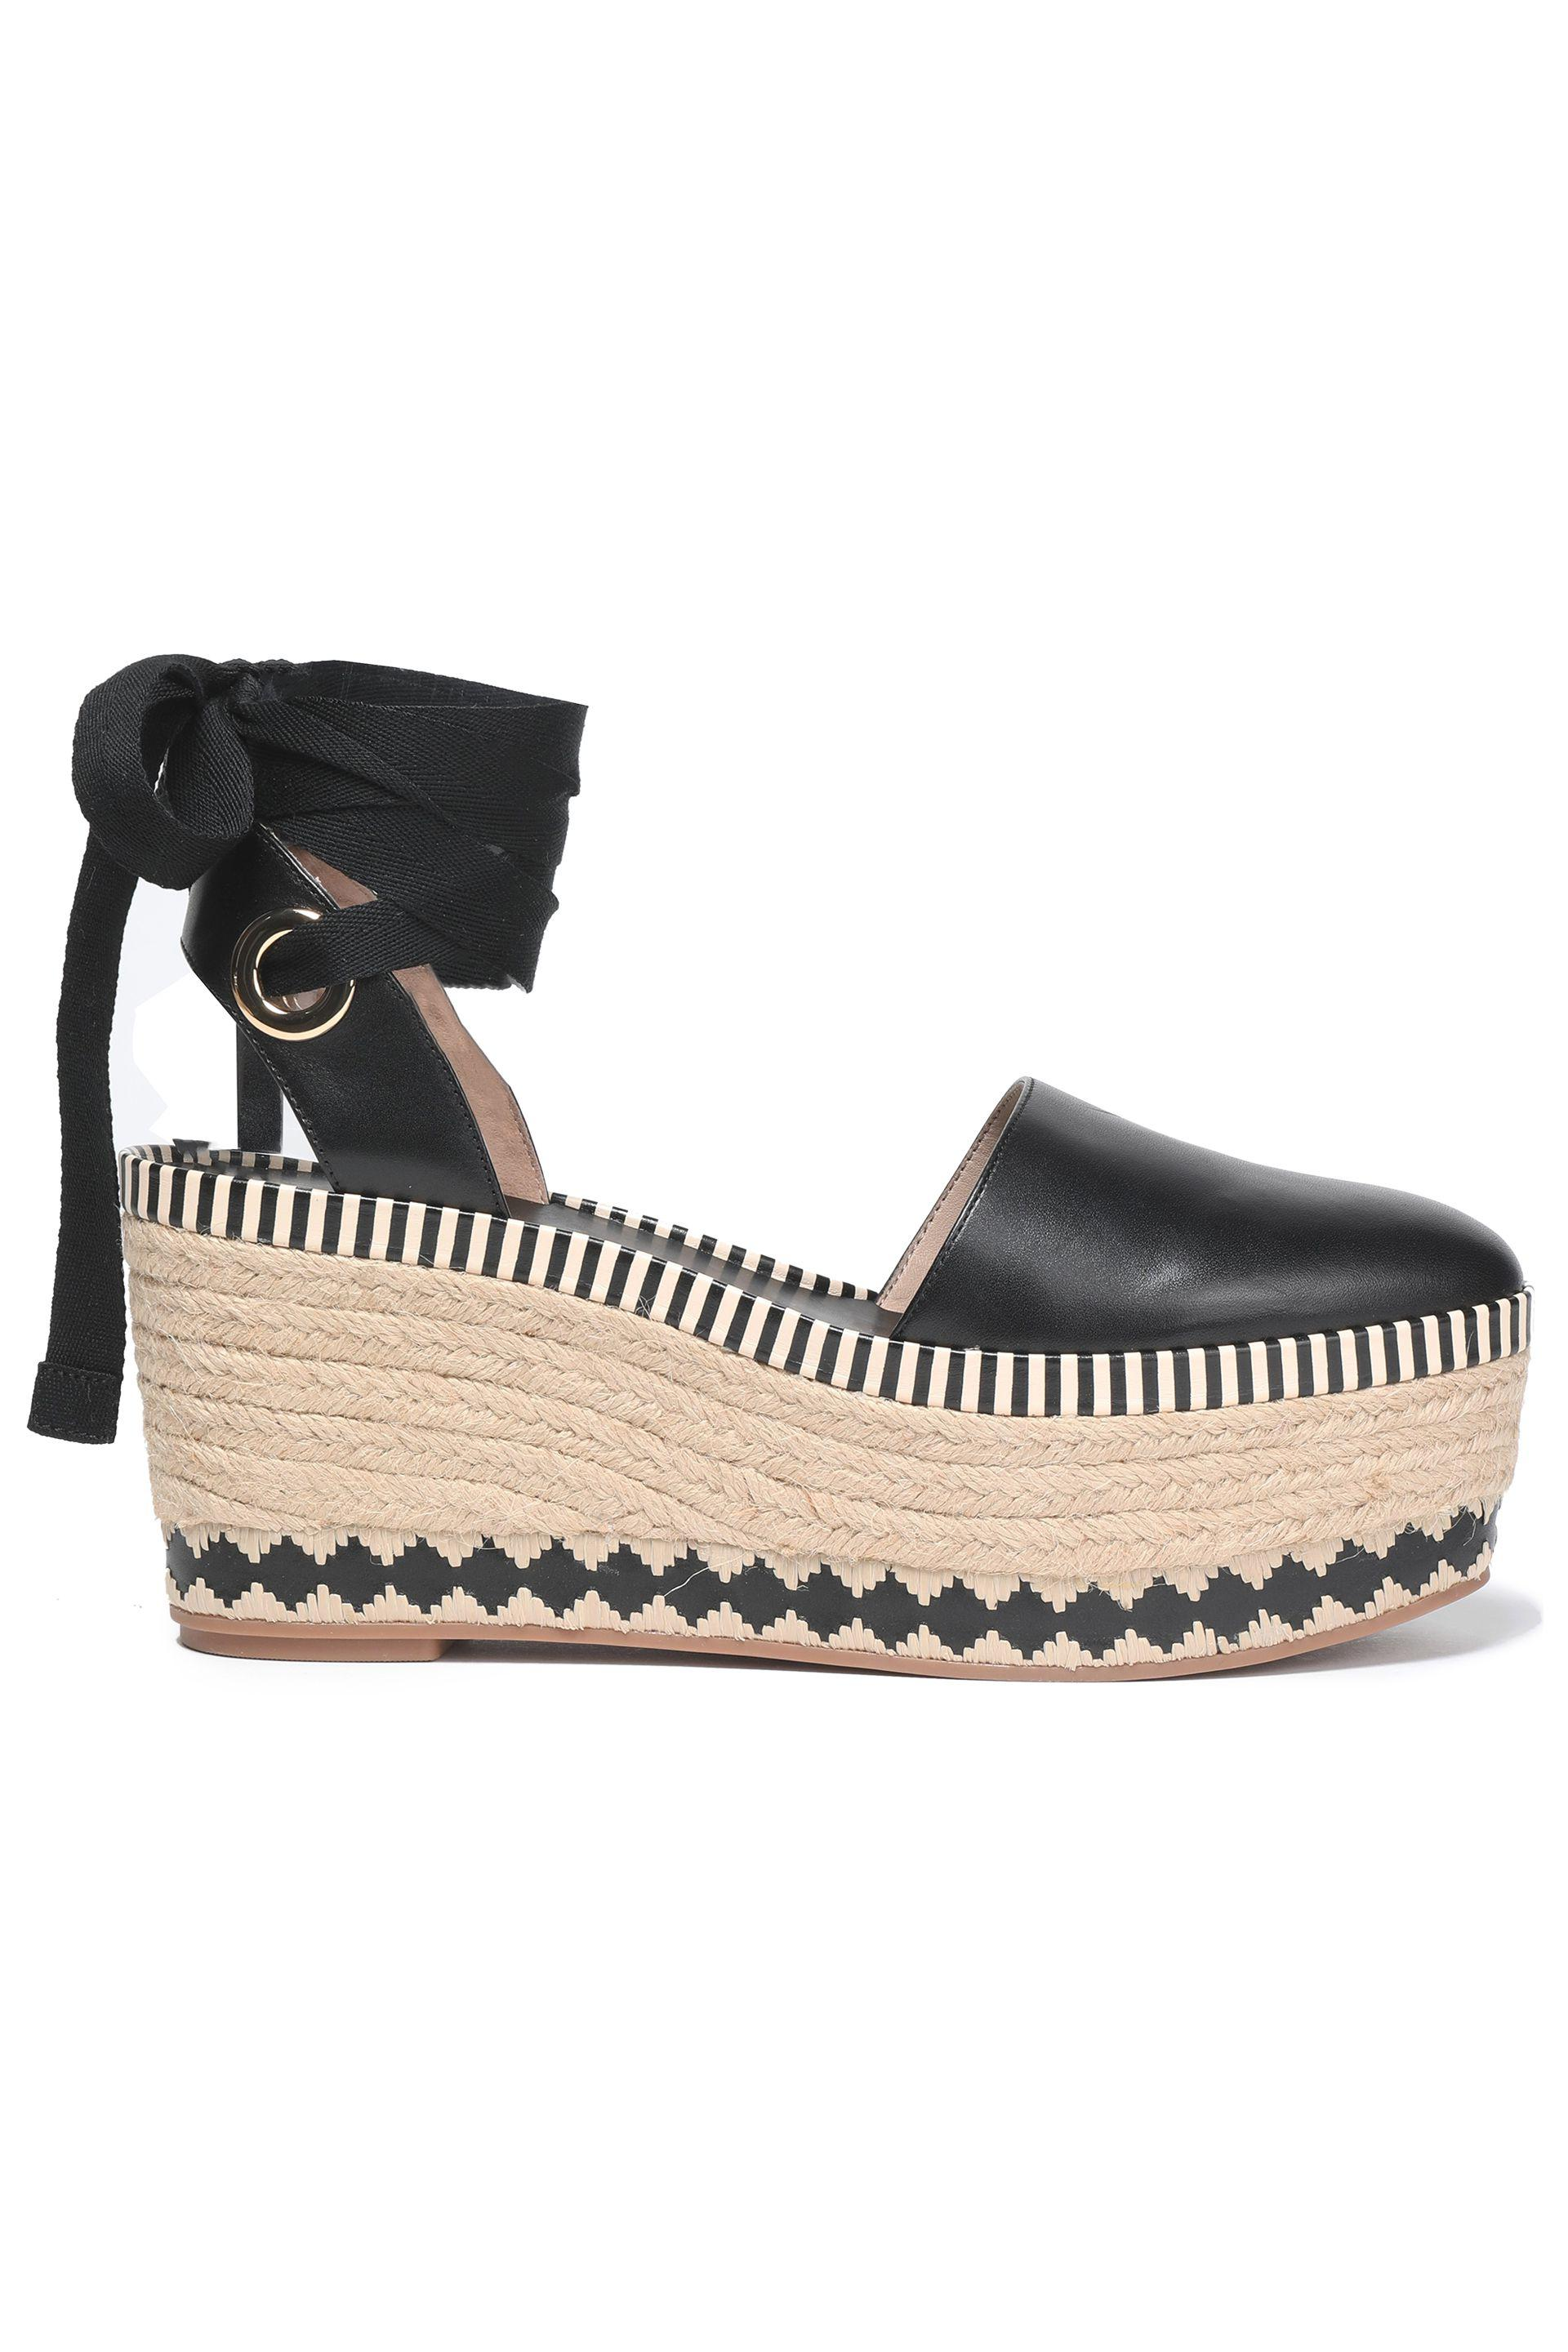 9a4ac2d9553 Tory Burch Lace-up Leather Platform Espadrilles in Black - Lyst